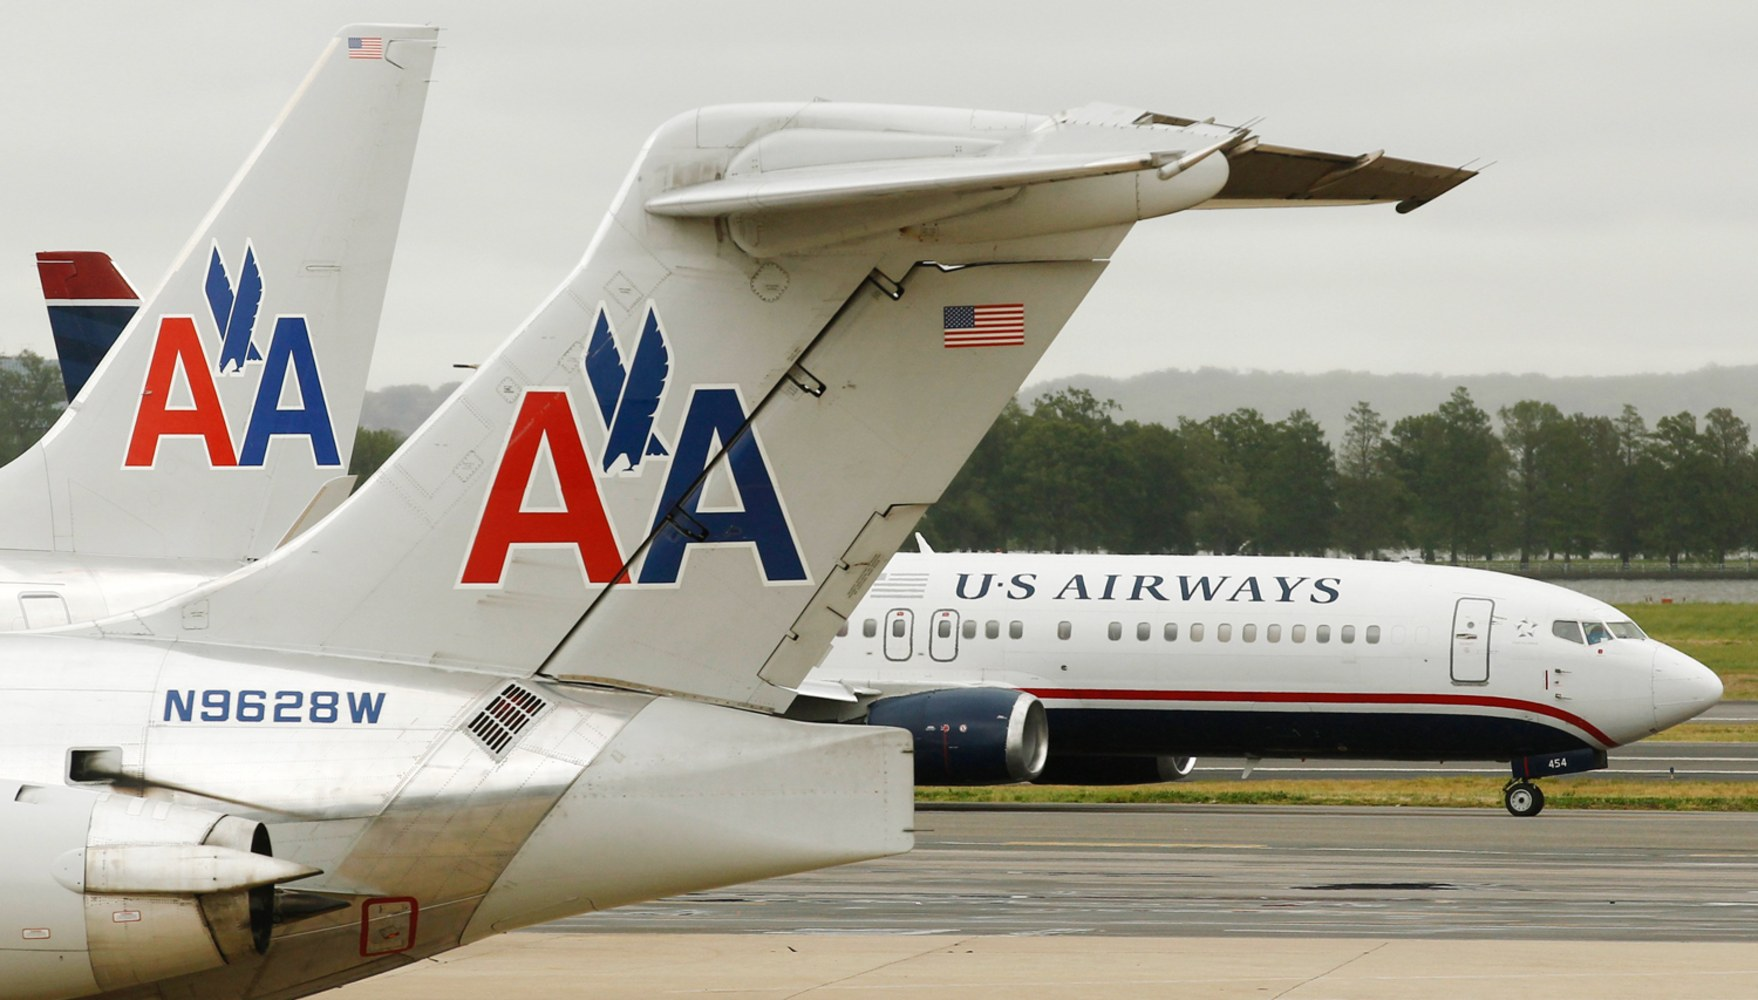 New American Airlines Chief Fares Wont Go Up R Now Nbc News